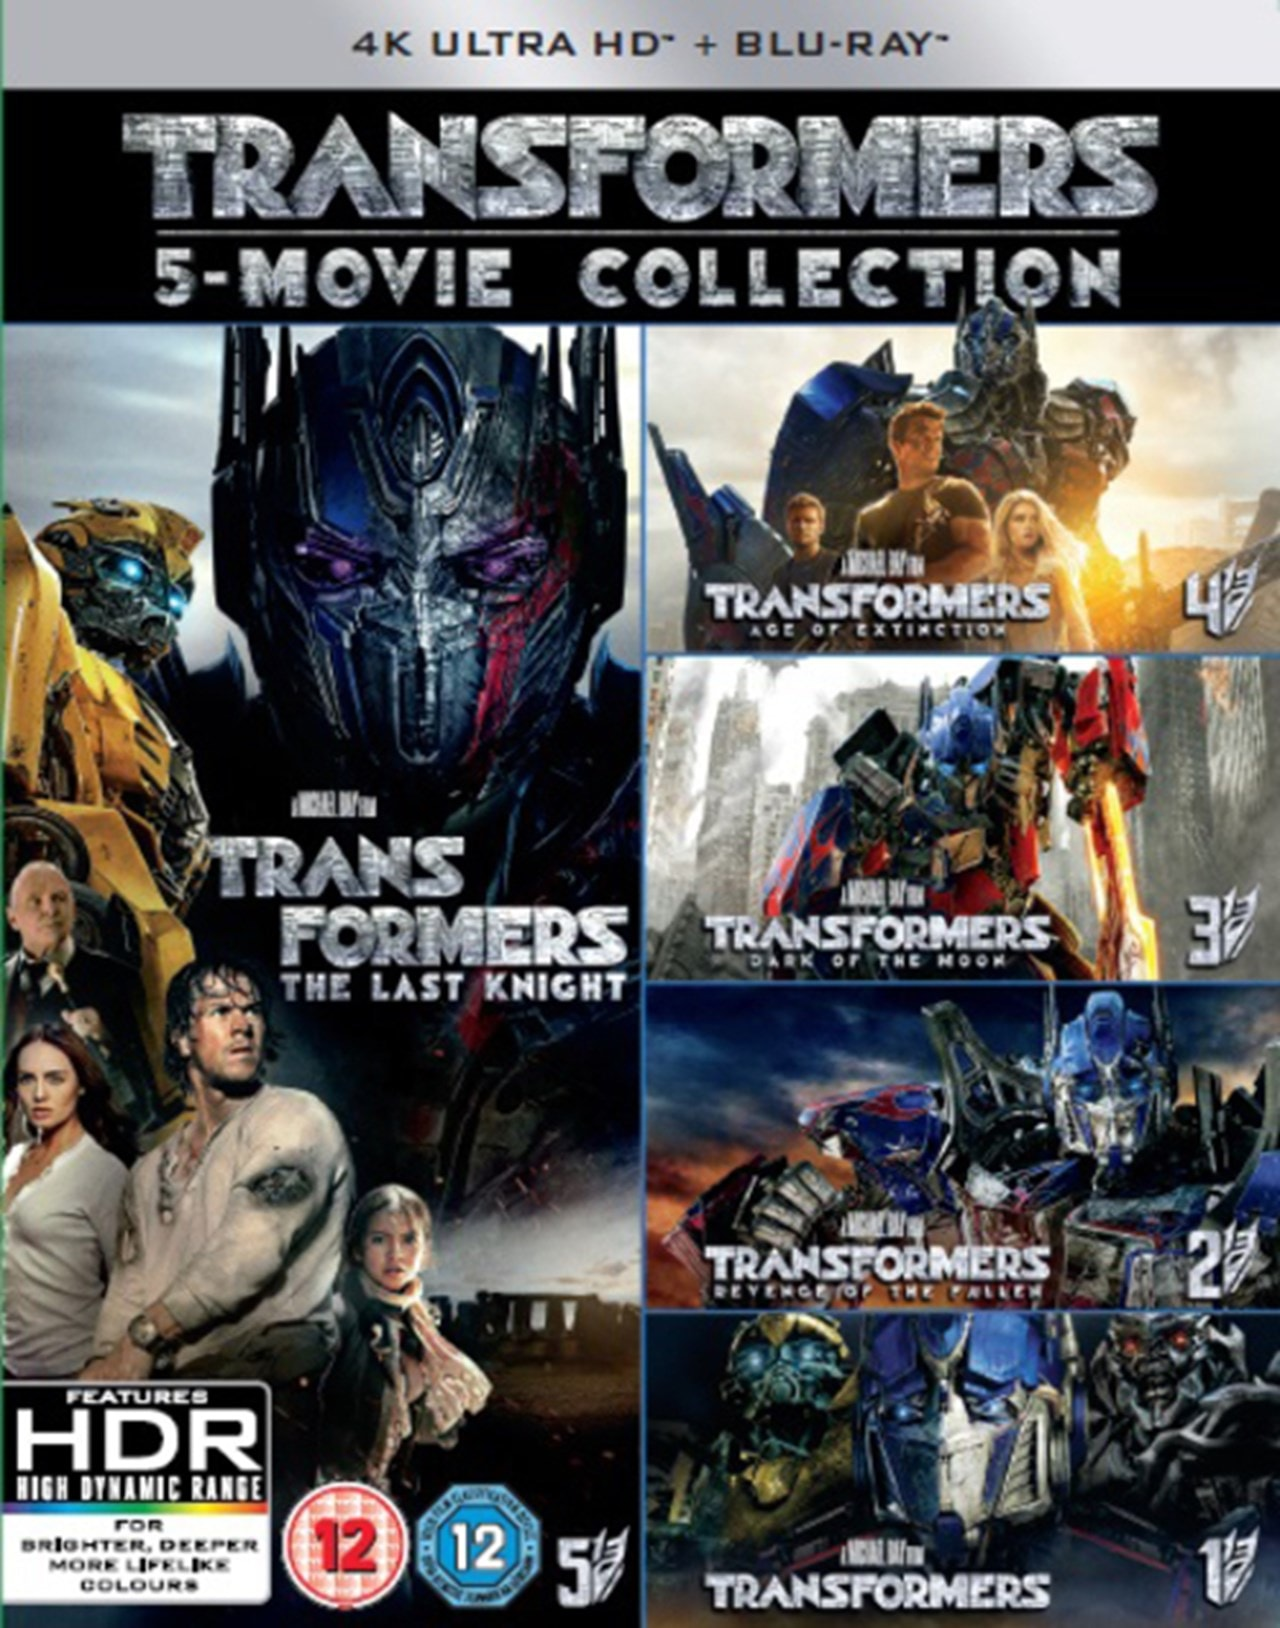 Transformers: 5-movie Collection - 1